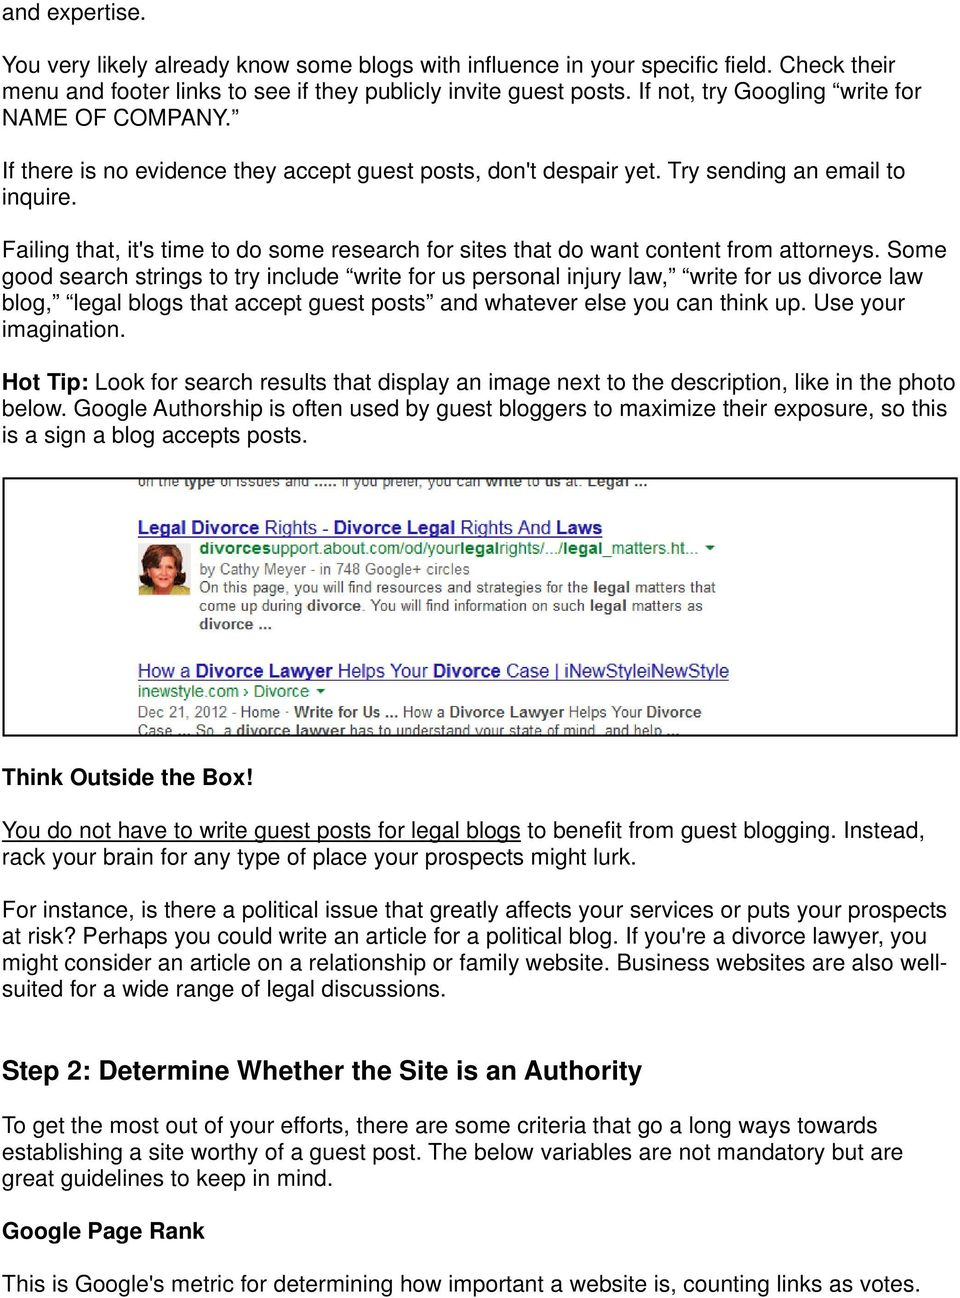 Step-by-Step Guest Blogging for Lawyers - PDF